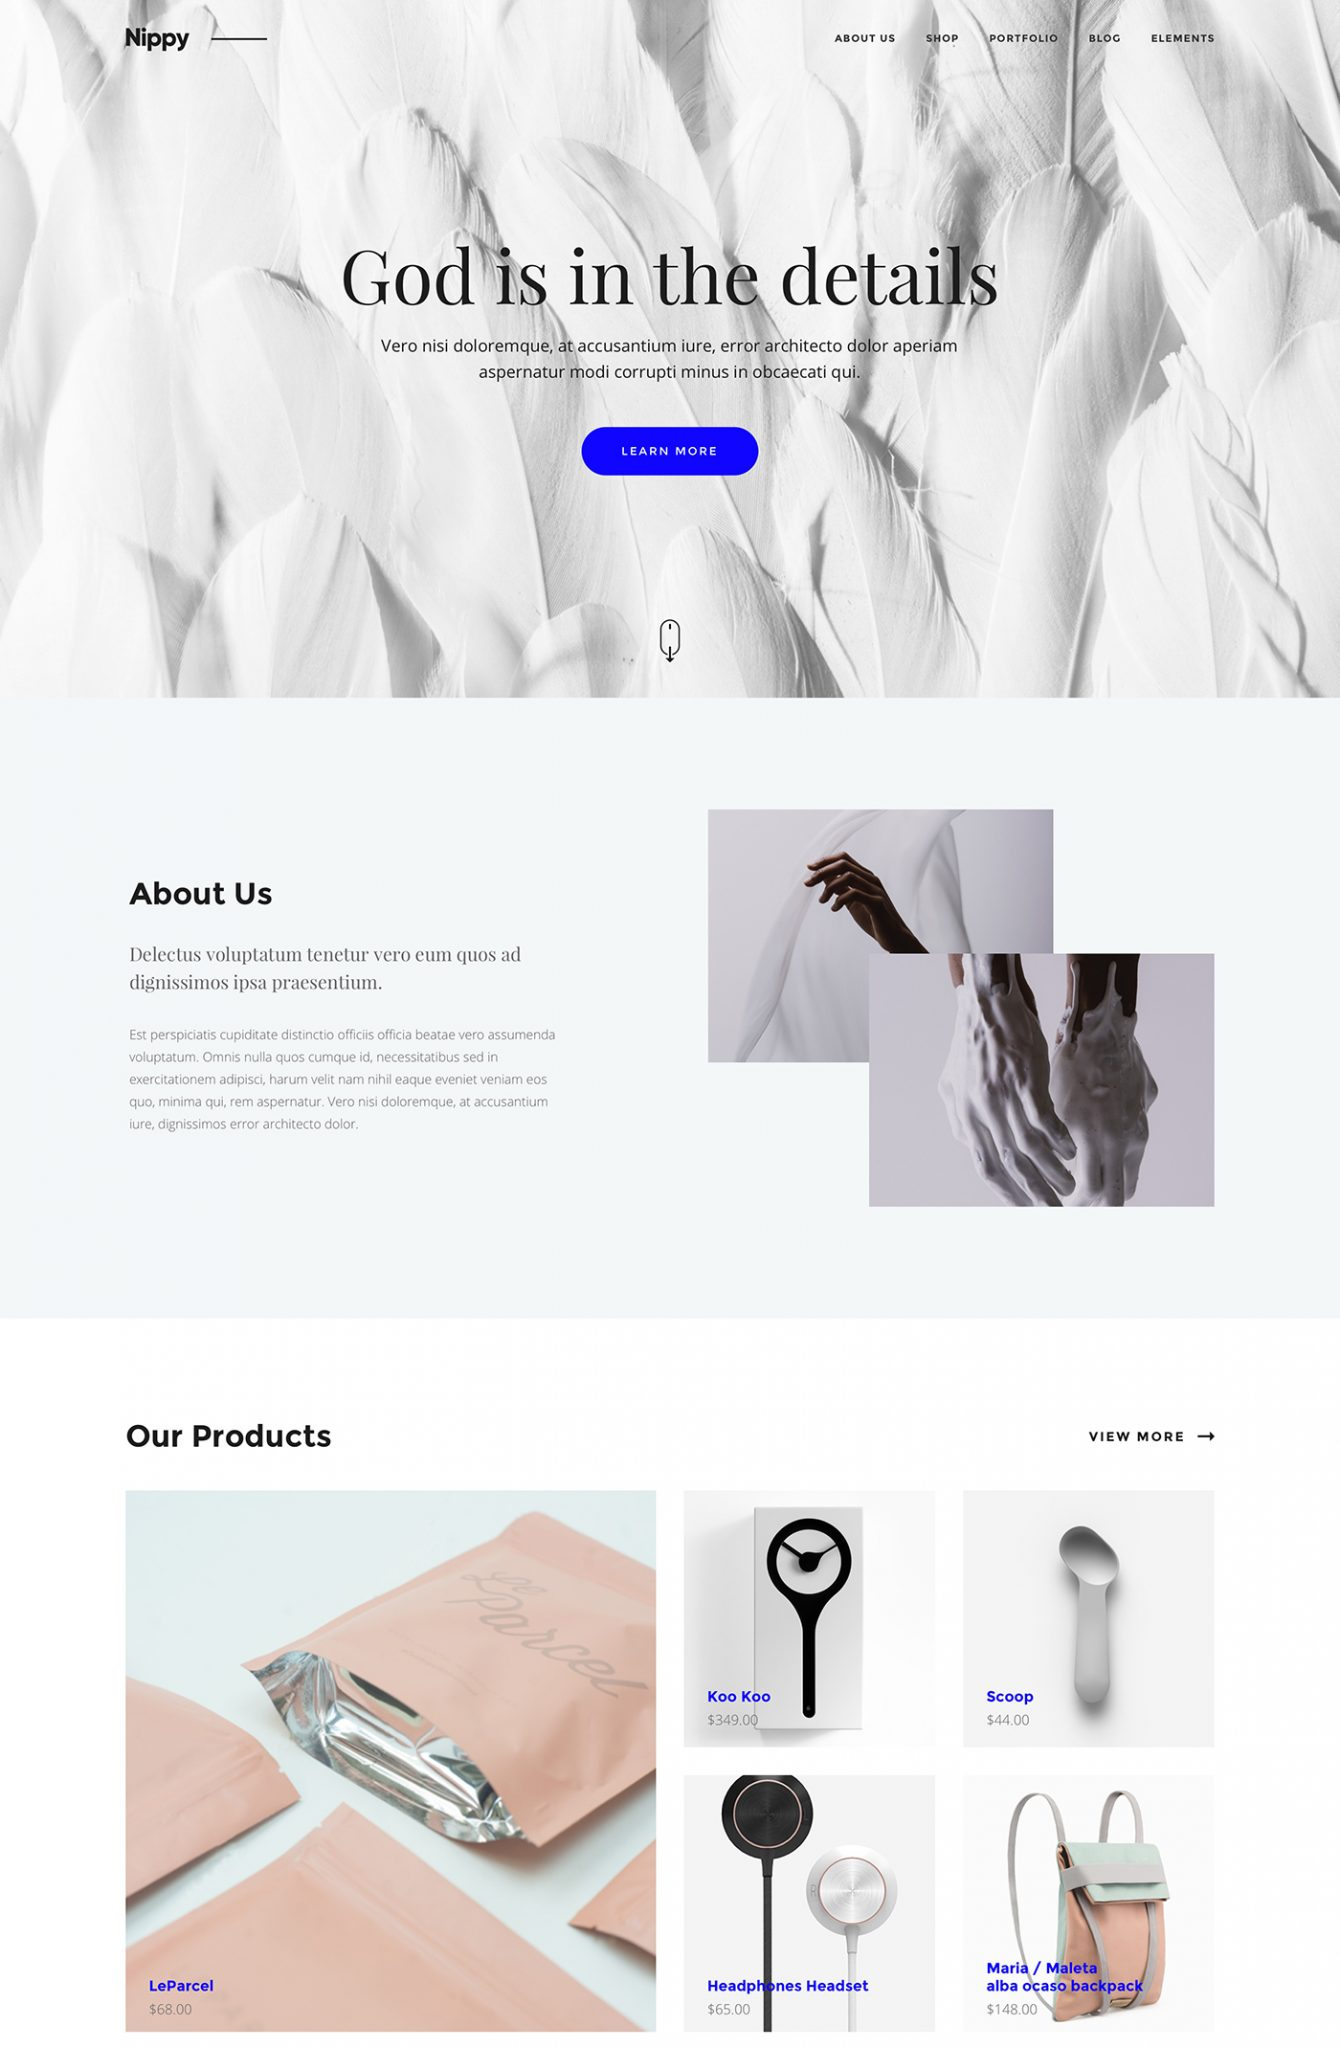 Nippy Free Landing Page - Vector webpage for creatives